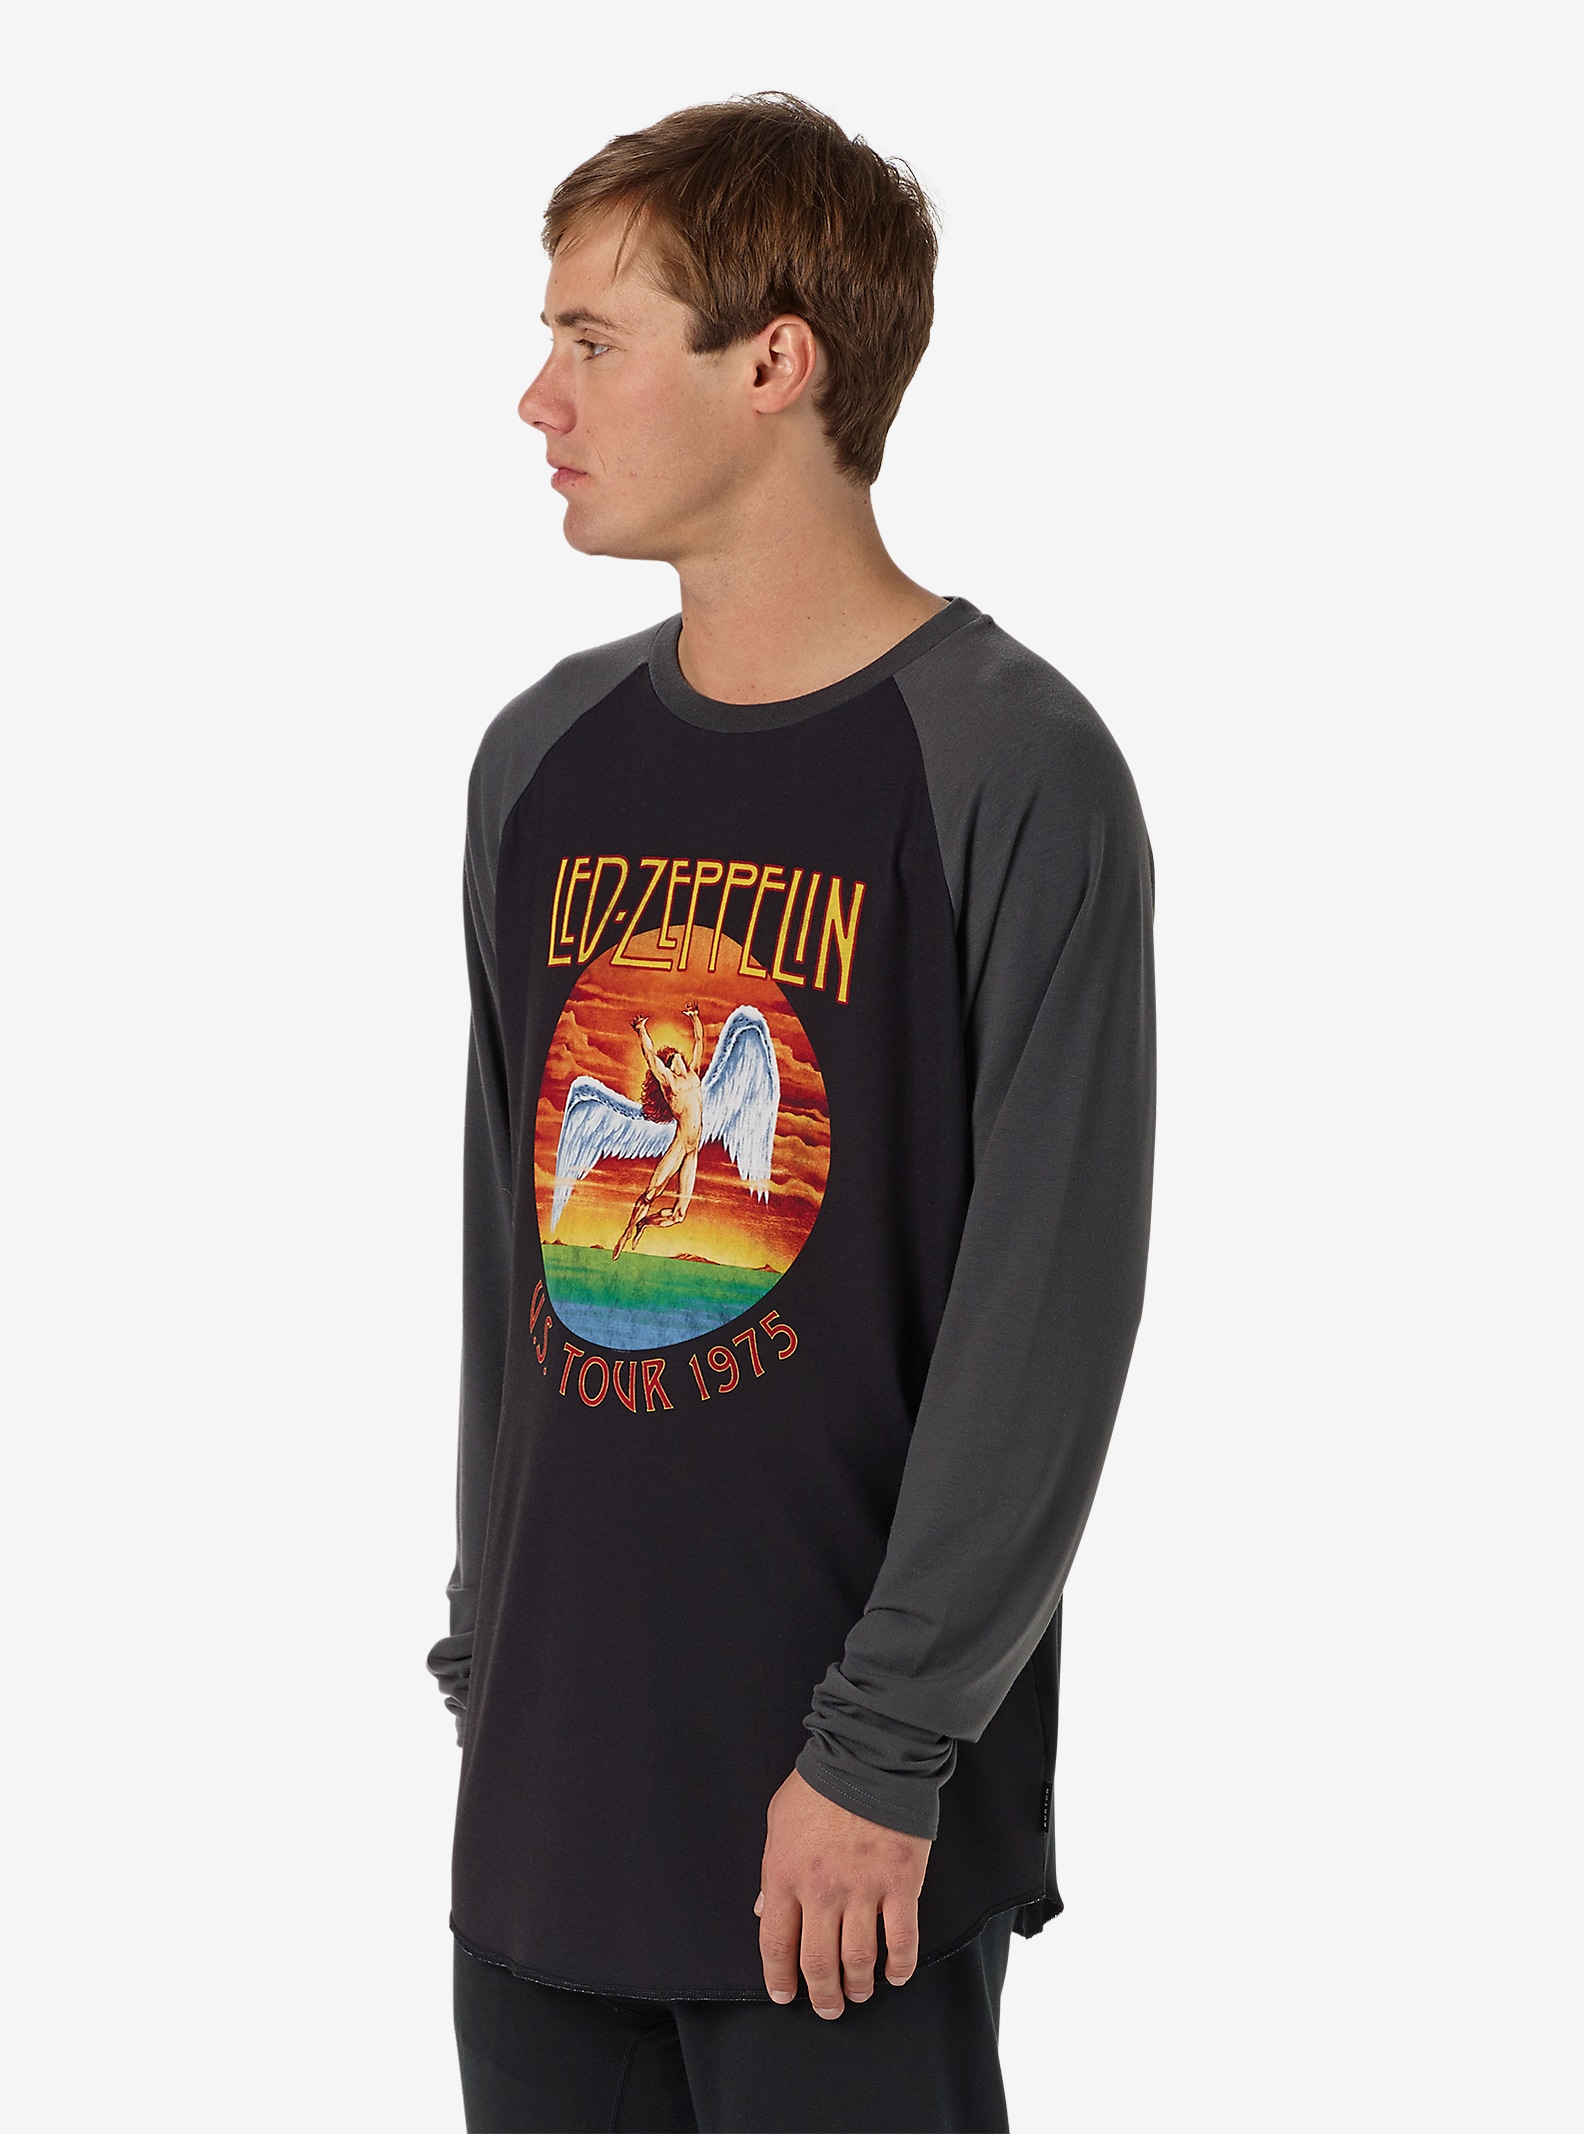 Led Zeppelin x Burton Roadie Tech Tee shown in Led Zeppelin 1975